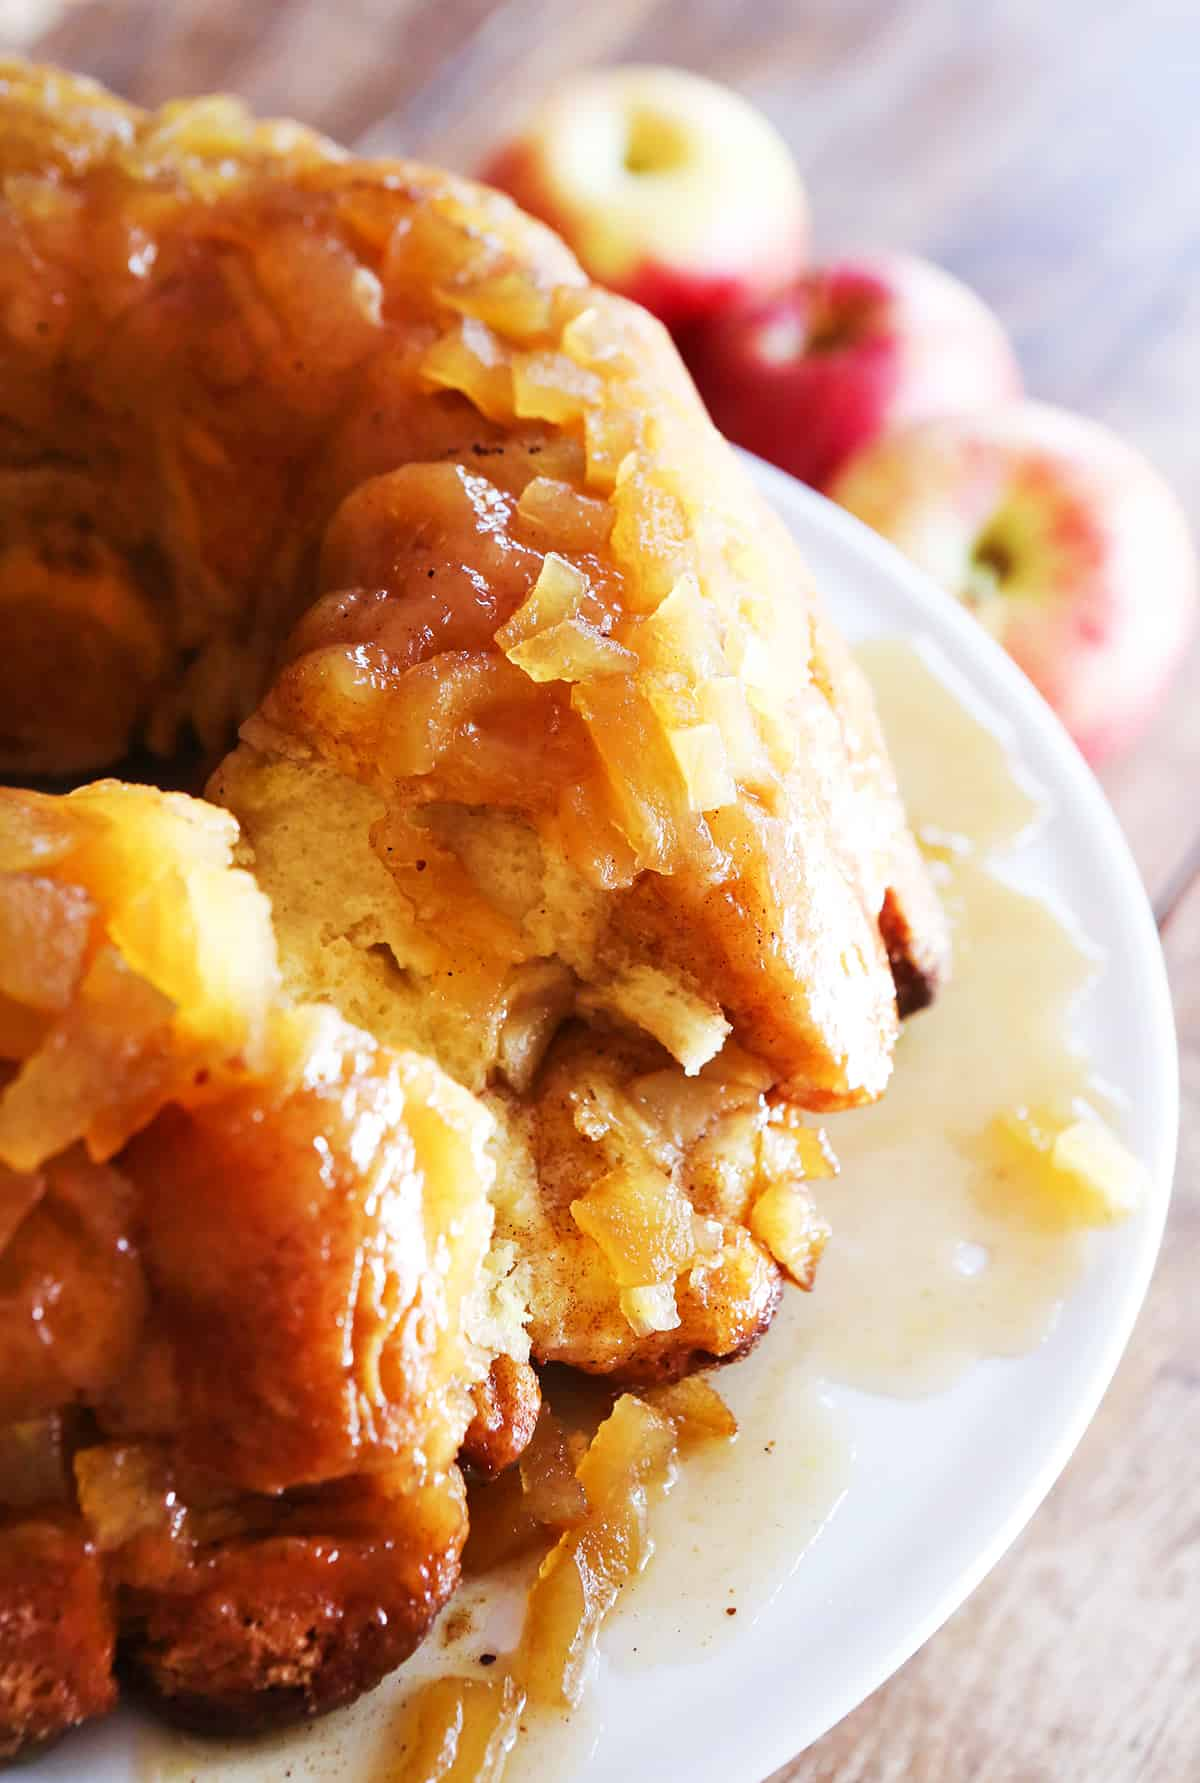 Apple pie monkey bread with a few bites pulled out from center.